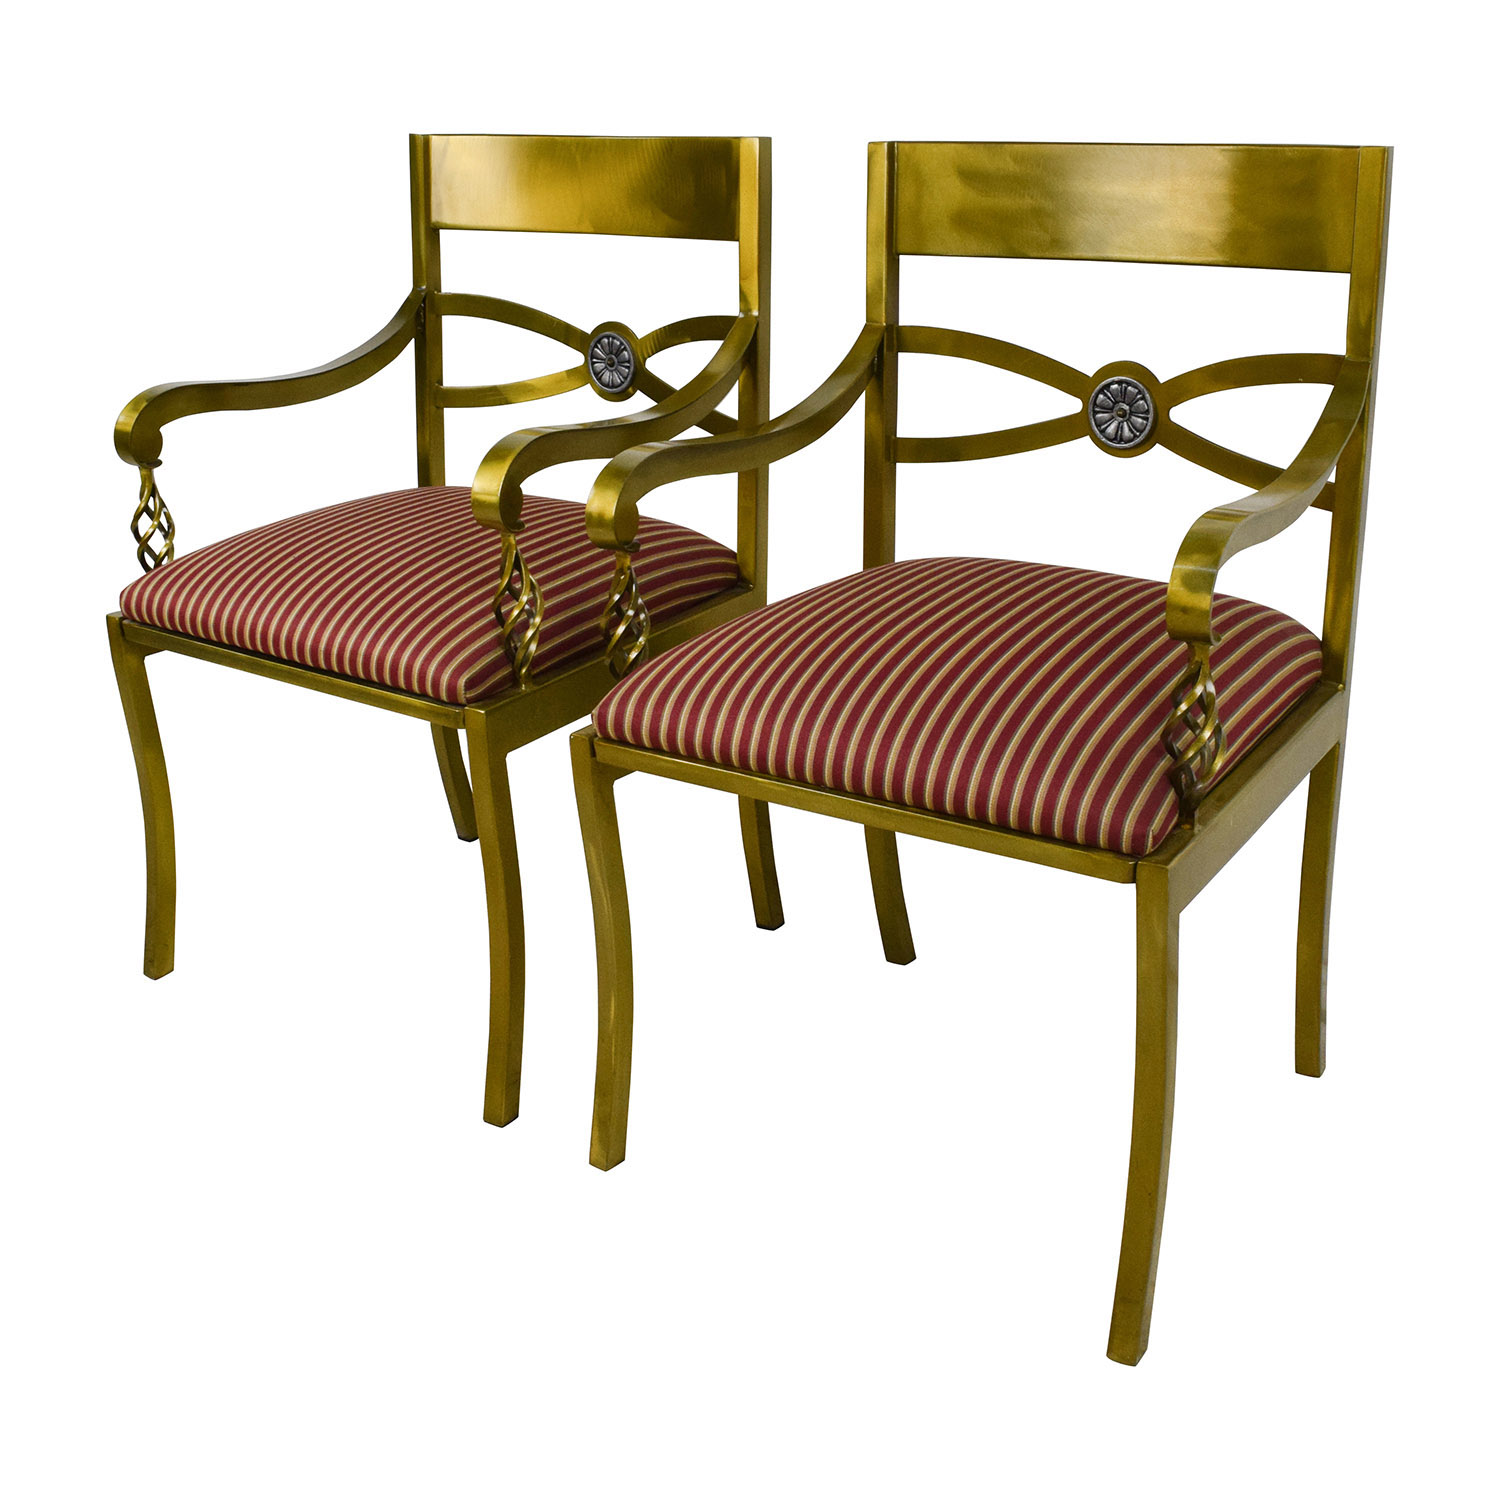 89 off custom made antique gold wrought iron chairs for Wrought iron furniture